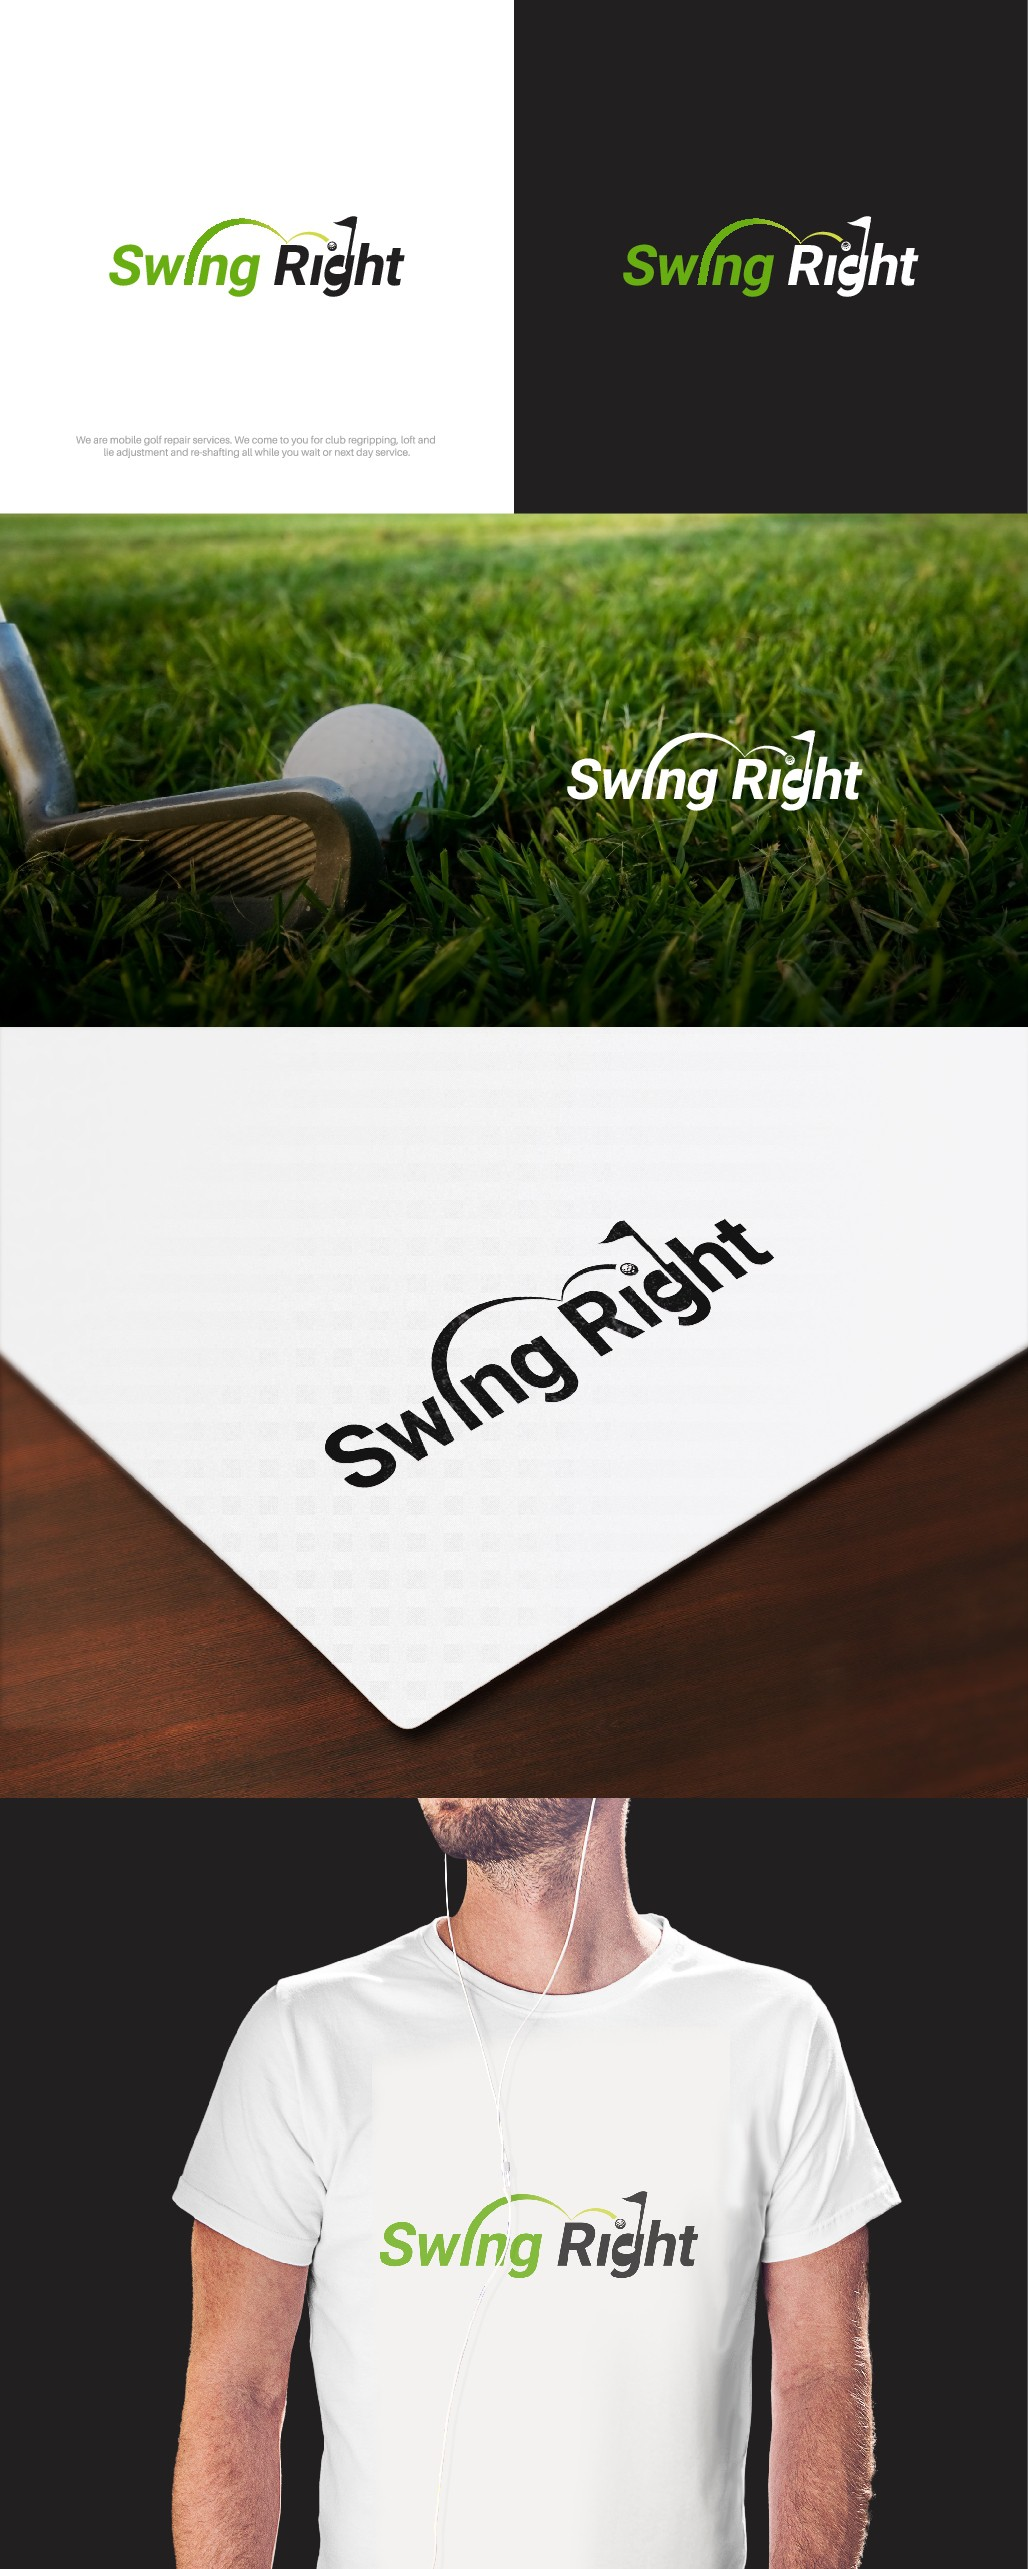 Swing Like The Best Or Go Home Mobile Fitting Services